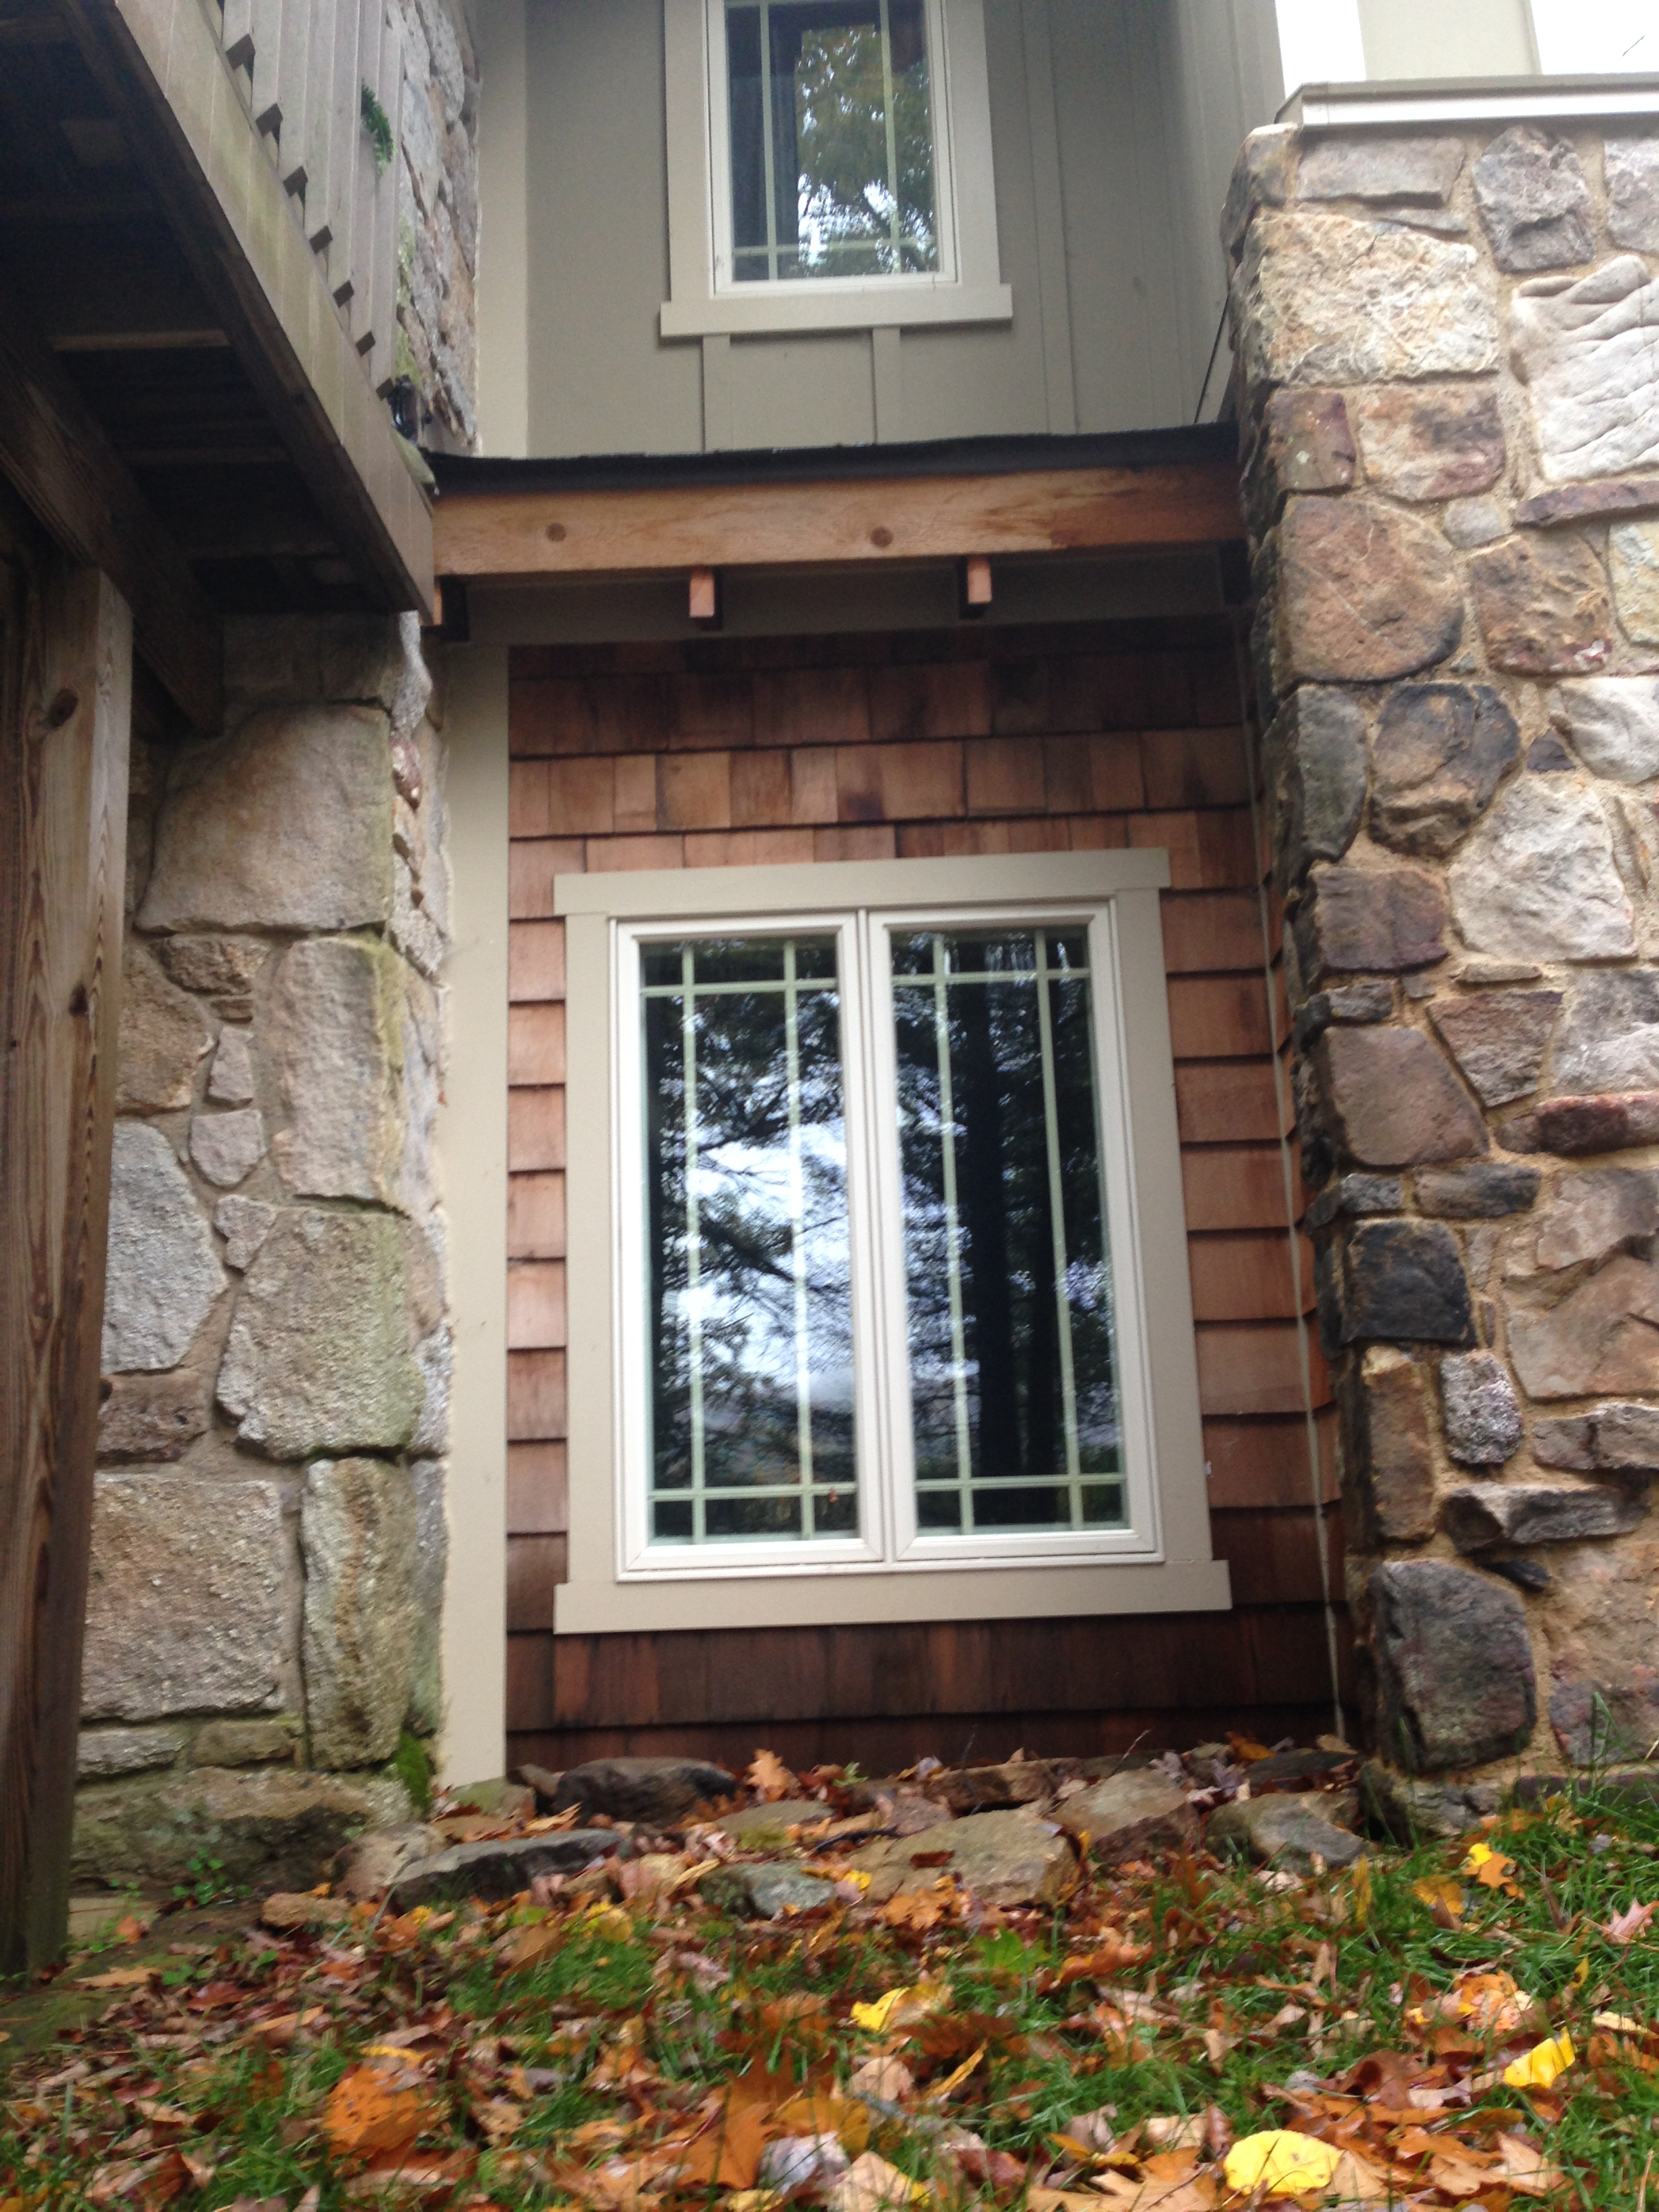 This is the window at the end of the basement hall, in the photos with the decoys.